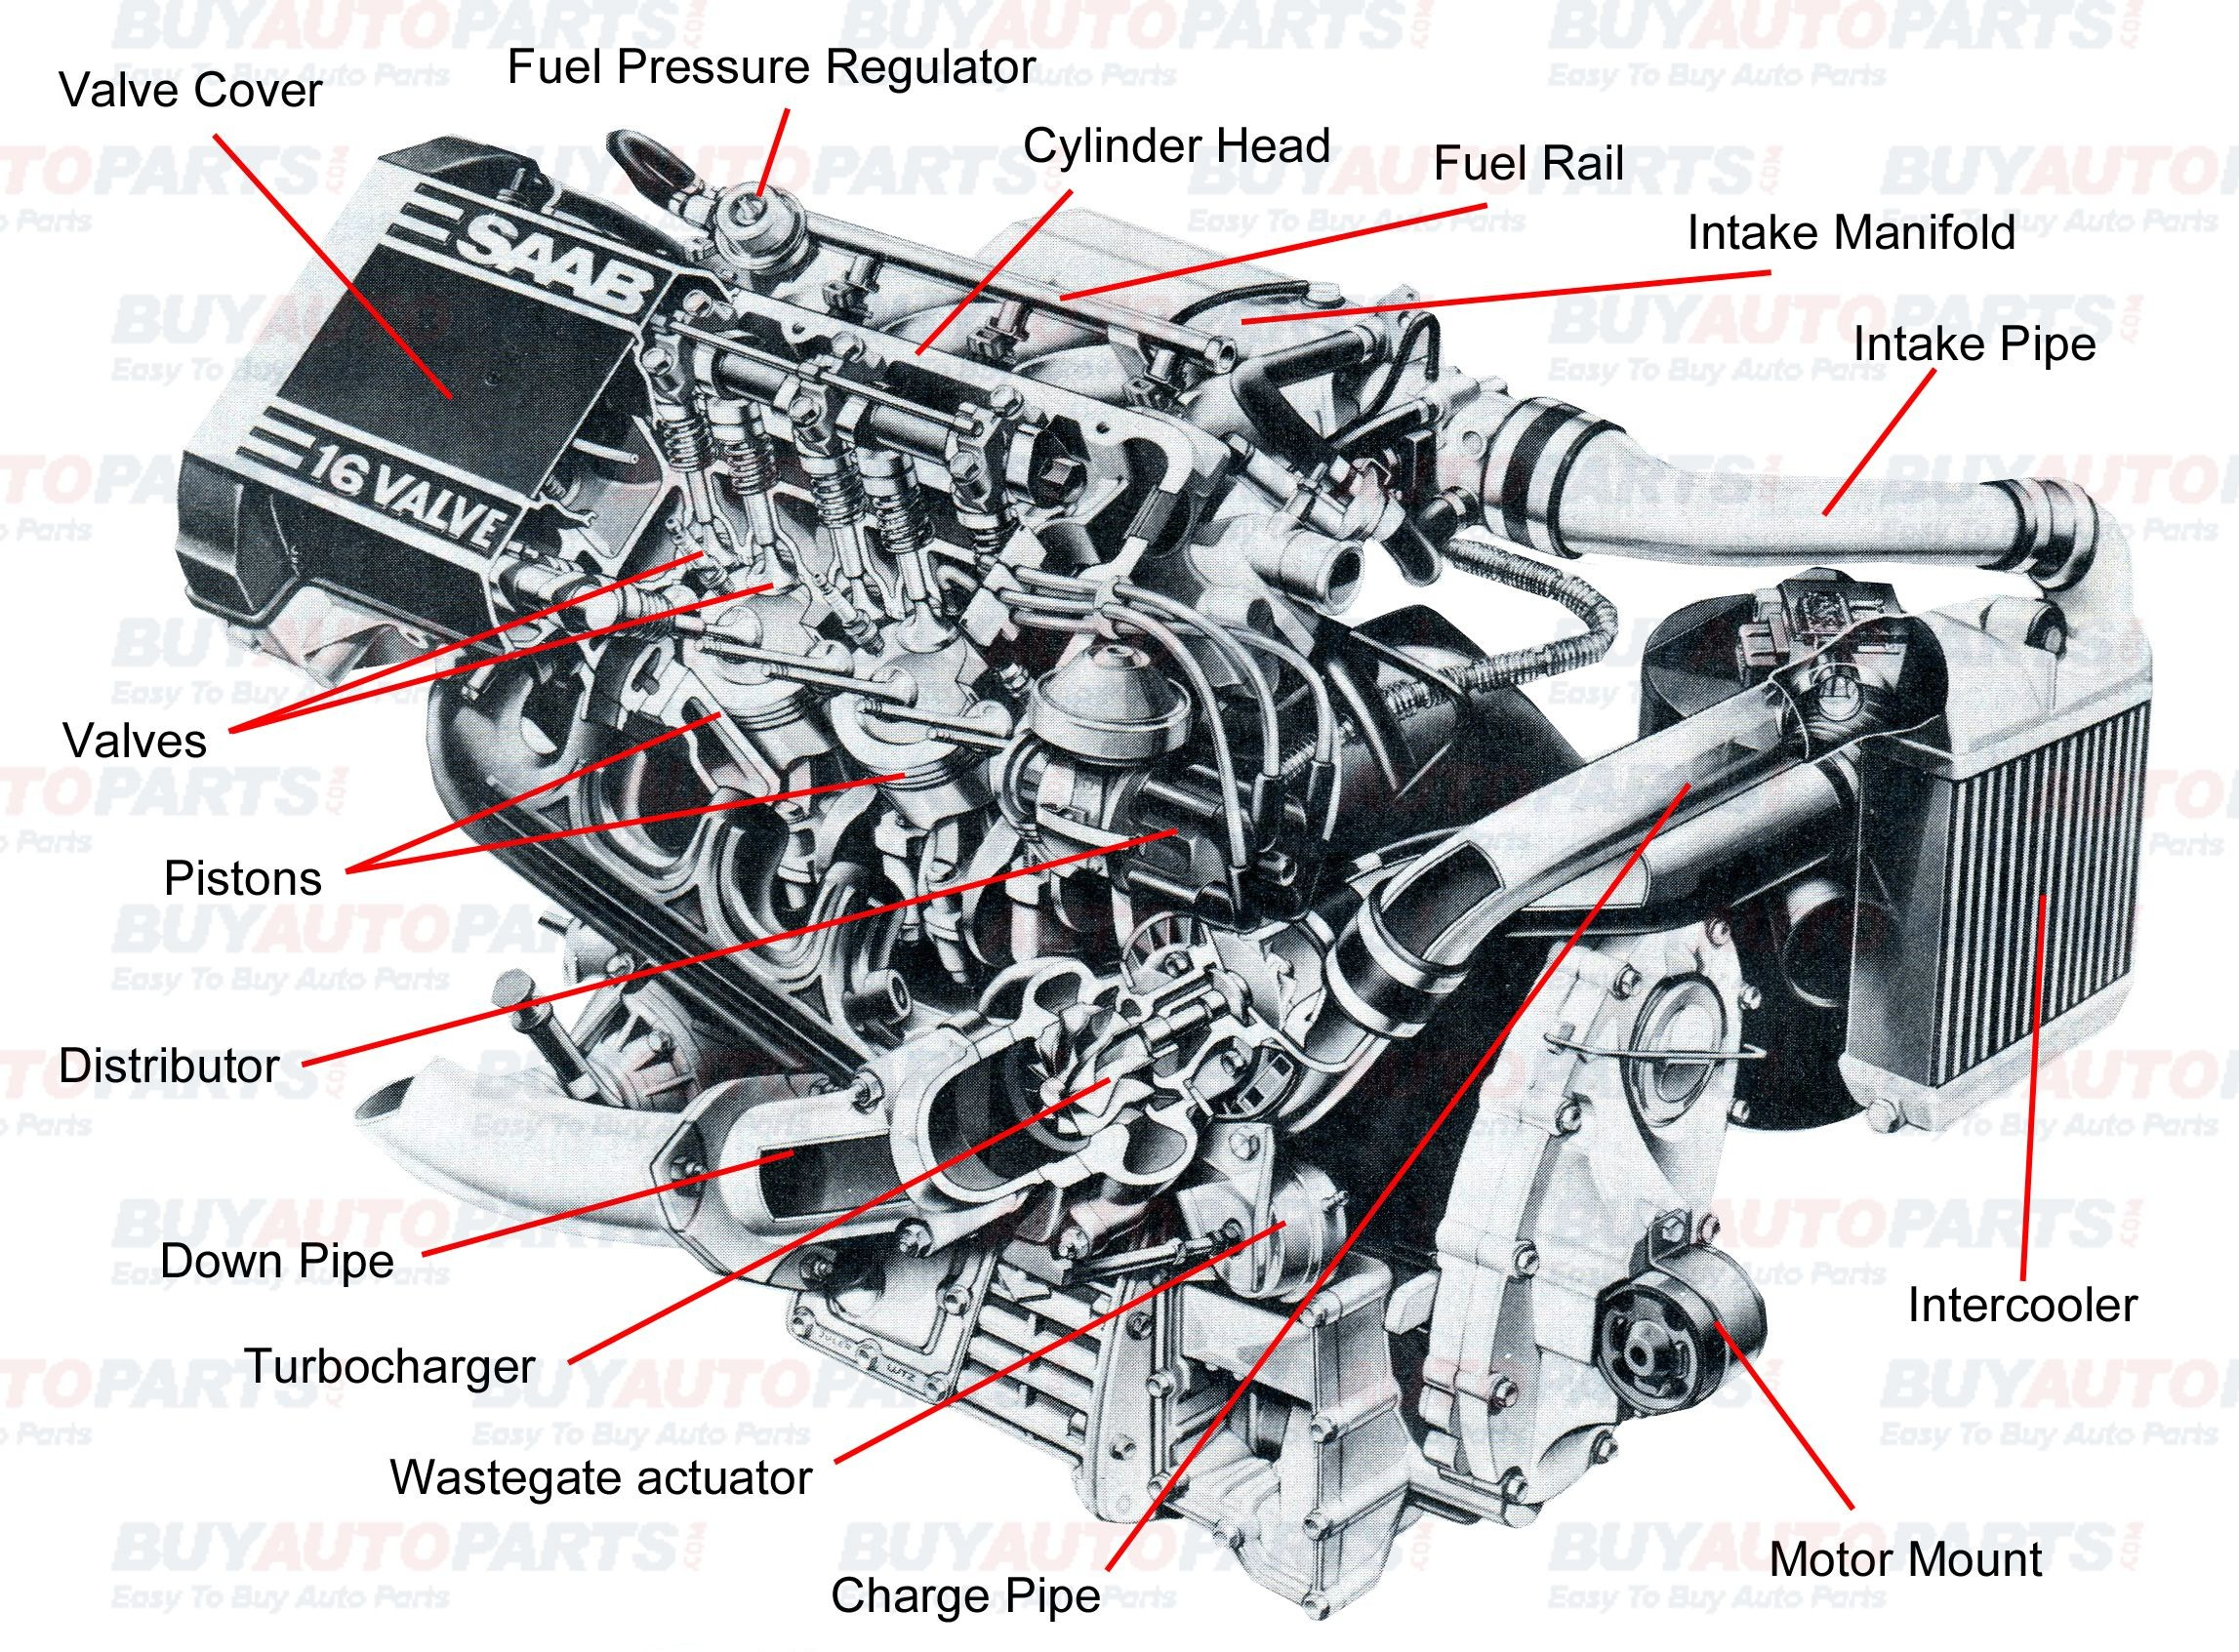 Bmw Engine Parts Diagram All Internal Bustion Engines Have the Same Basic Ponents the Of Bmw Engine Parts Diagram Pelican Technical Article Bmw X3 Engine Cooling Fan Replacement